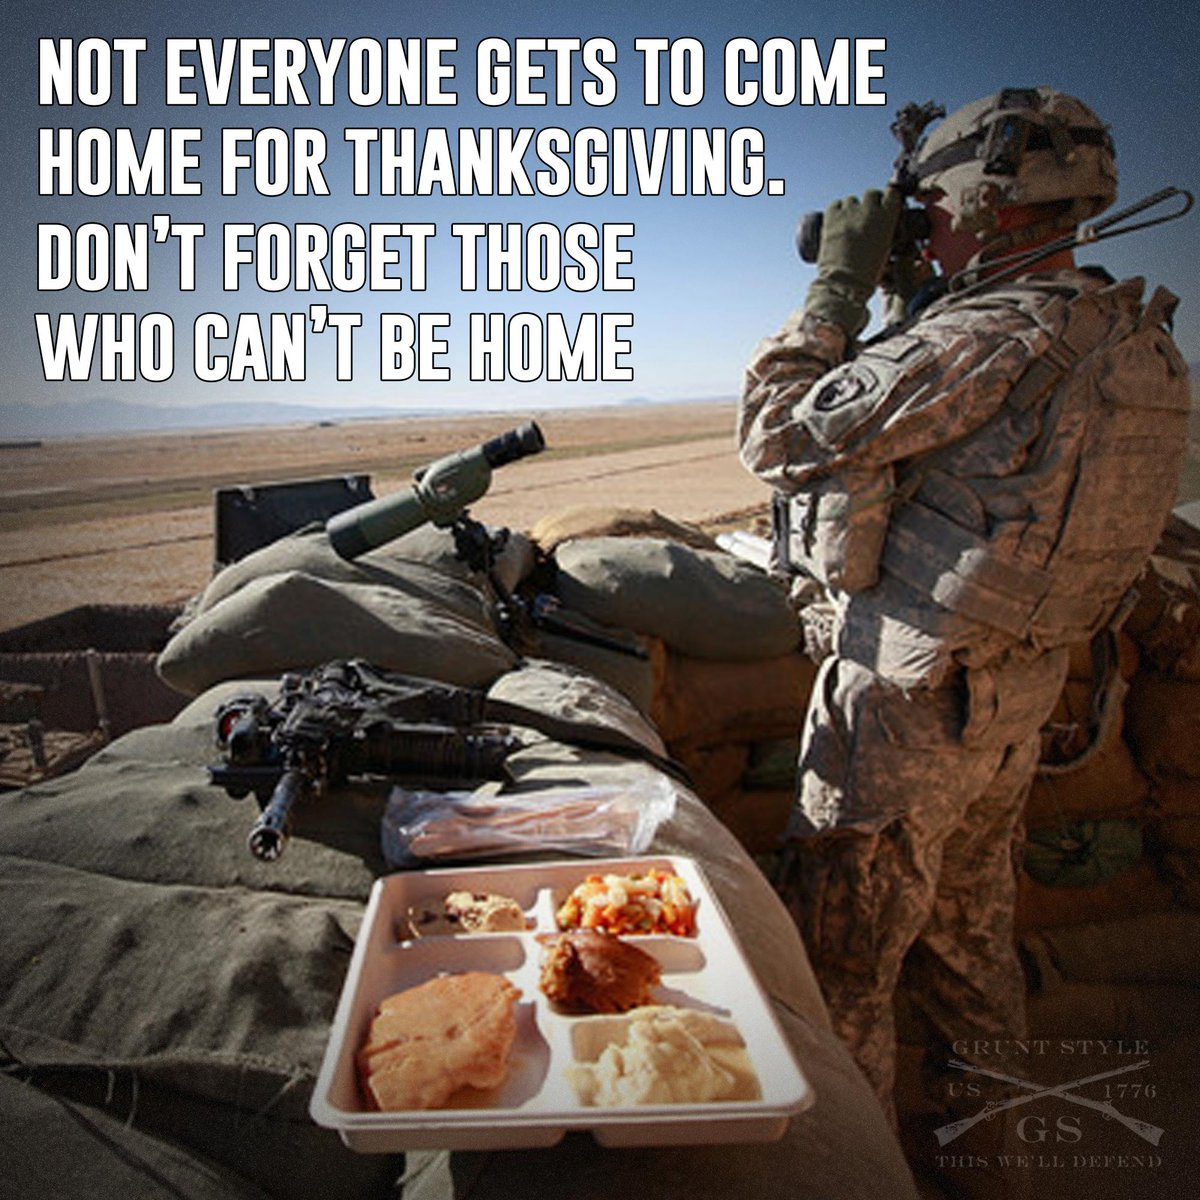 Remember those who can't celebrate with their families. Never Above you Never below you Always besides you http://t.co/ibMJjCQama